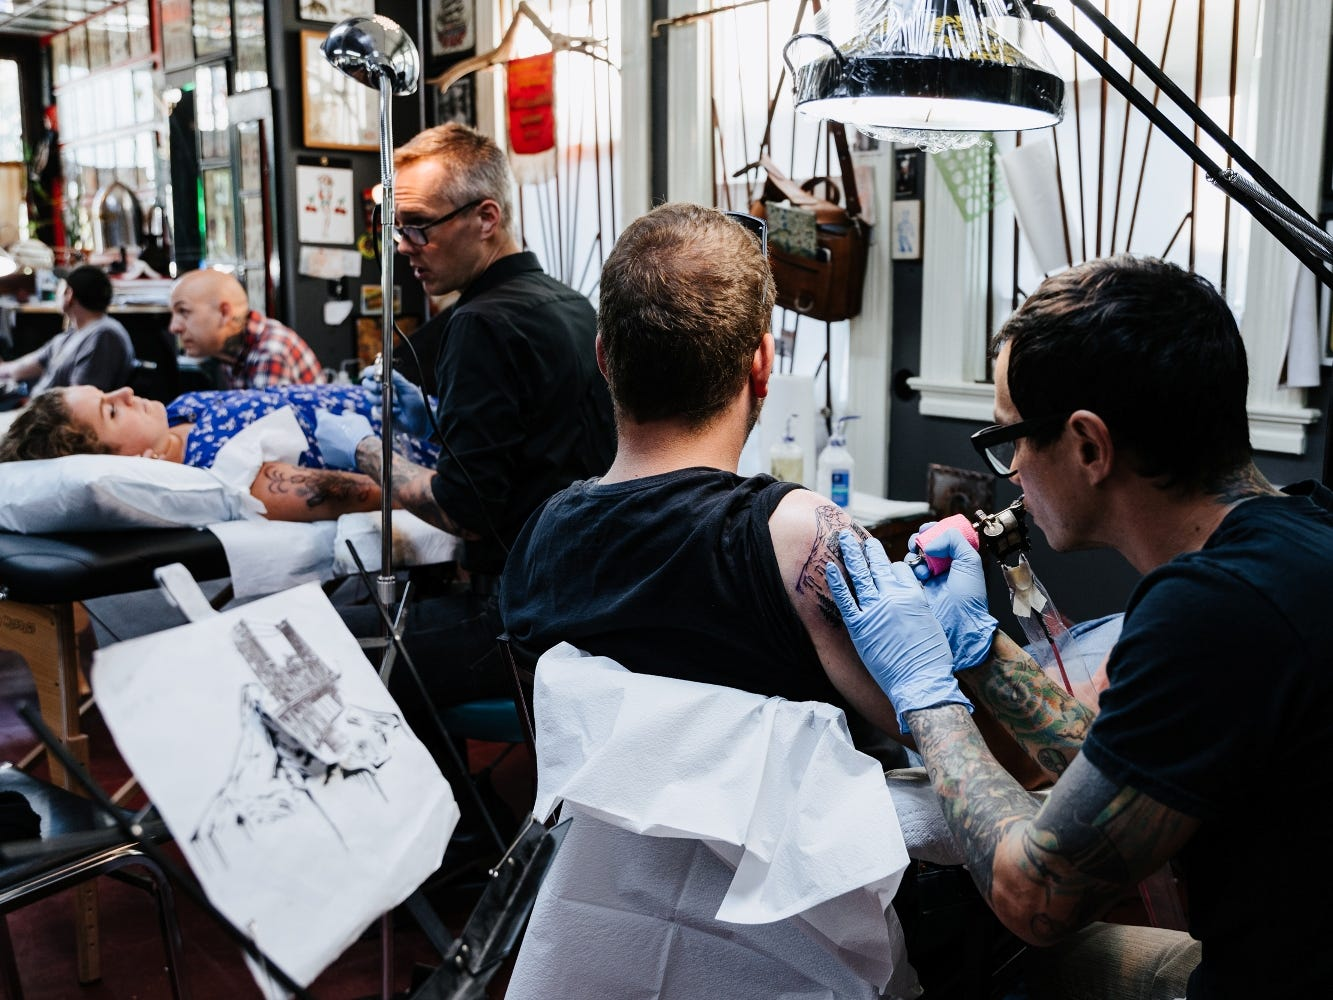 Portland, Oregon, can seem like it has a tattoo parlor on every corner, which makes Atlas all the more remarkable because it continues to be one of the city's top shops.